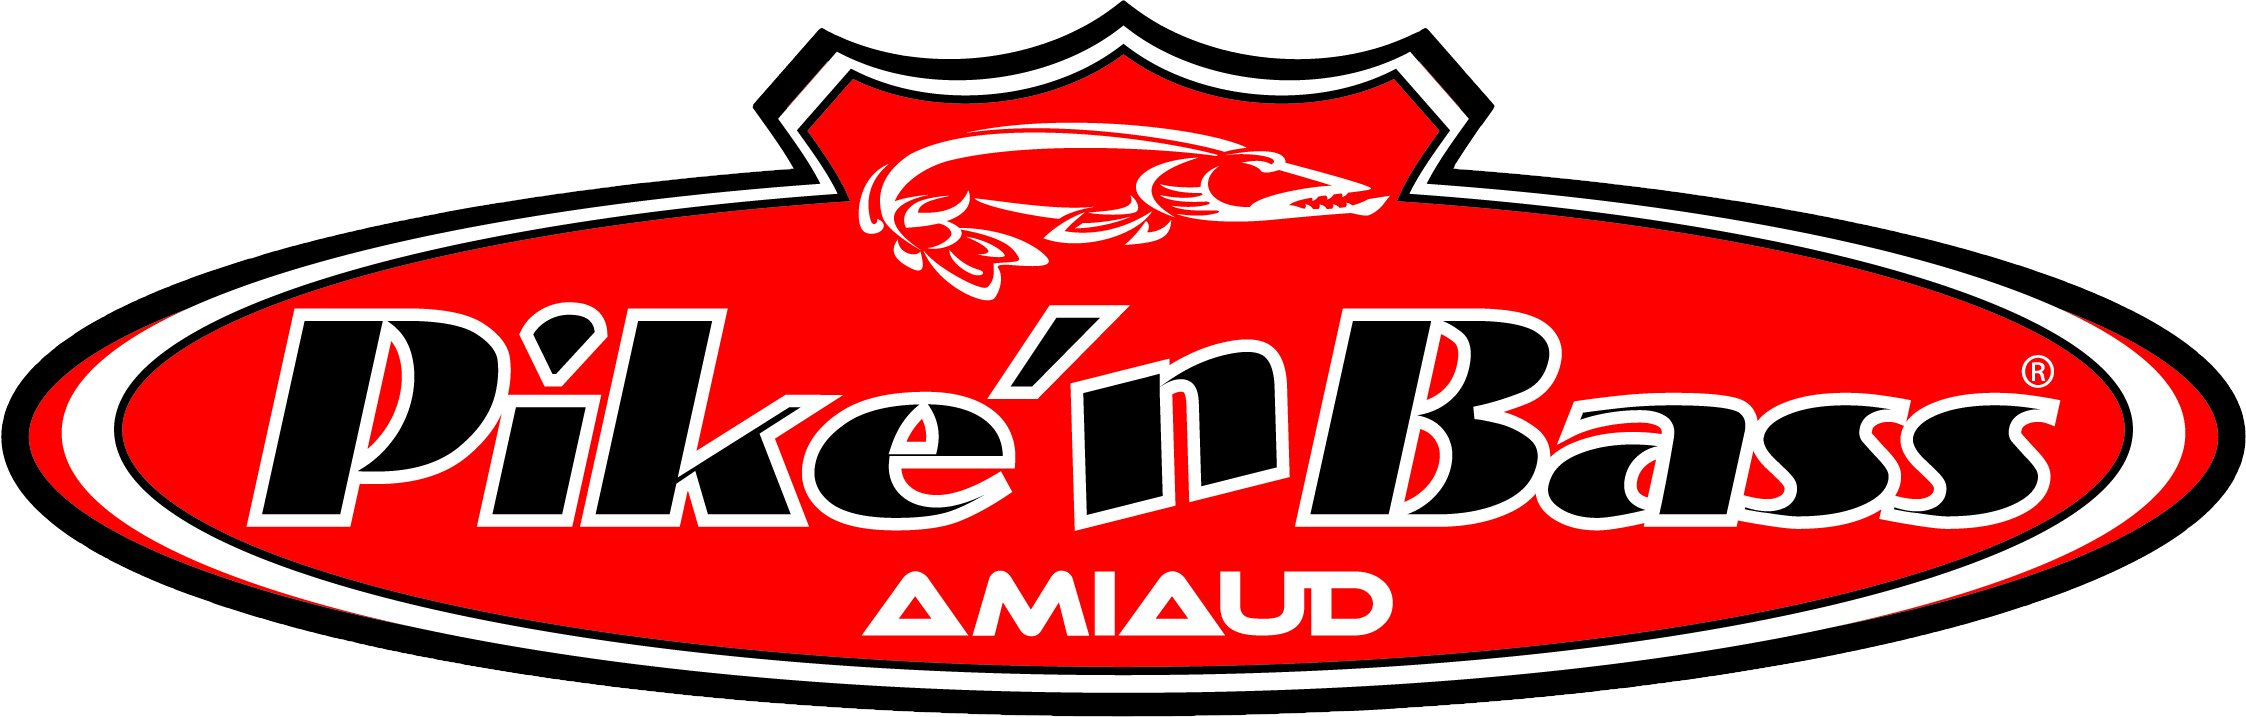 logo pike n bass amiaud peche